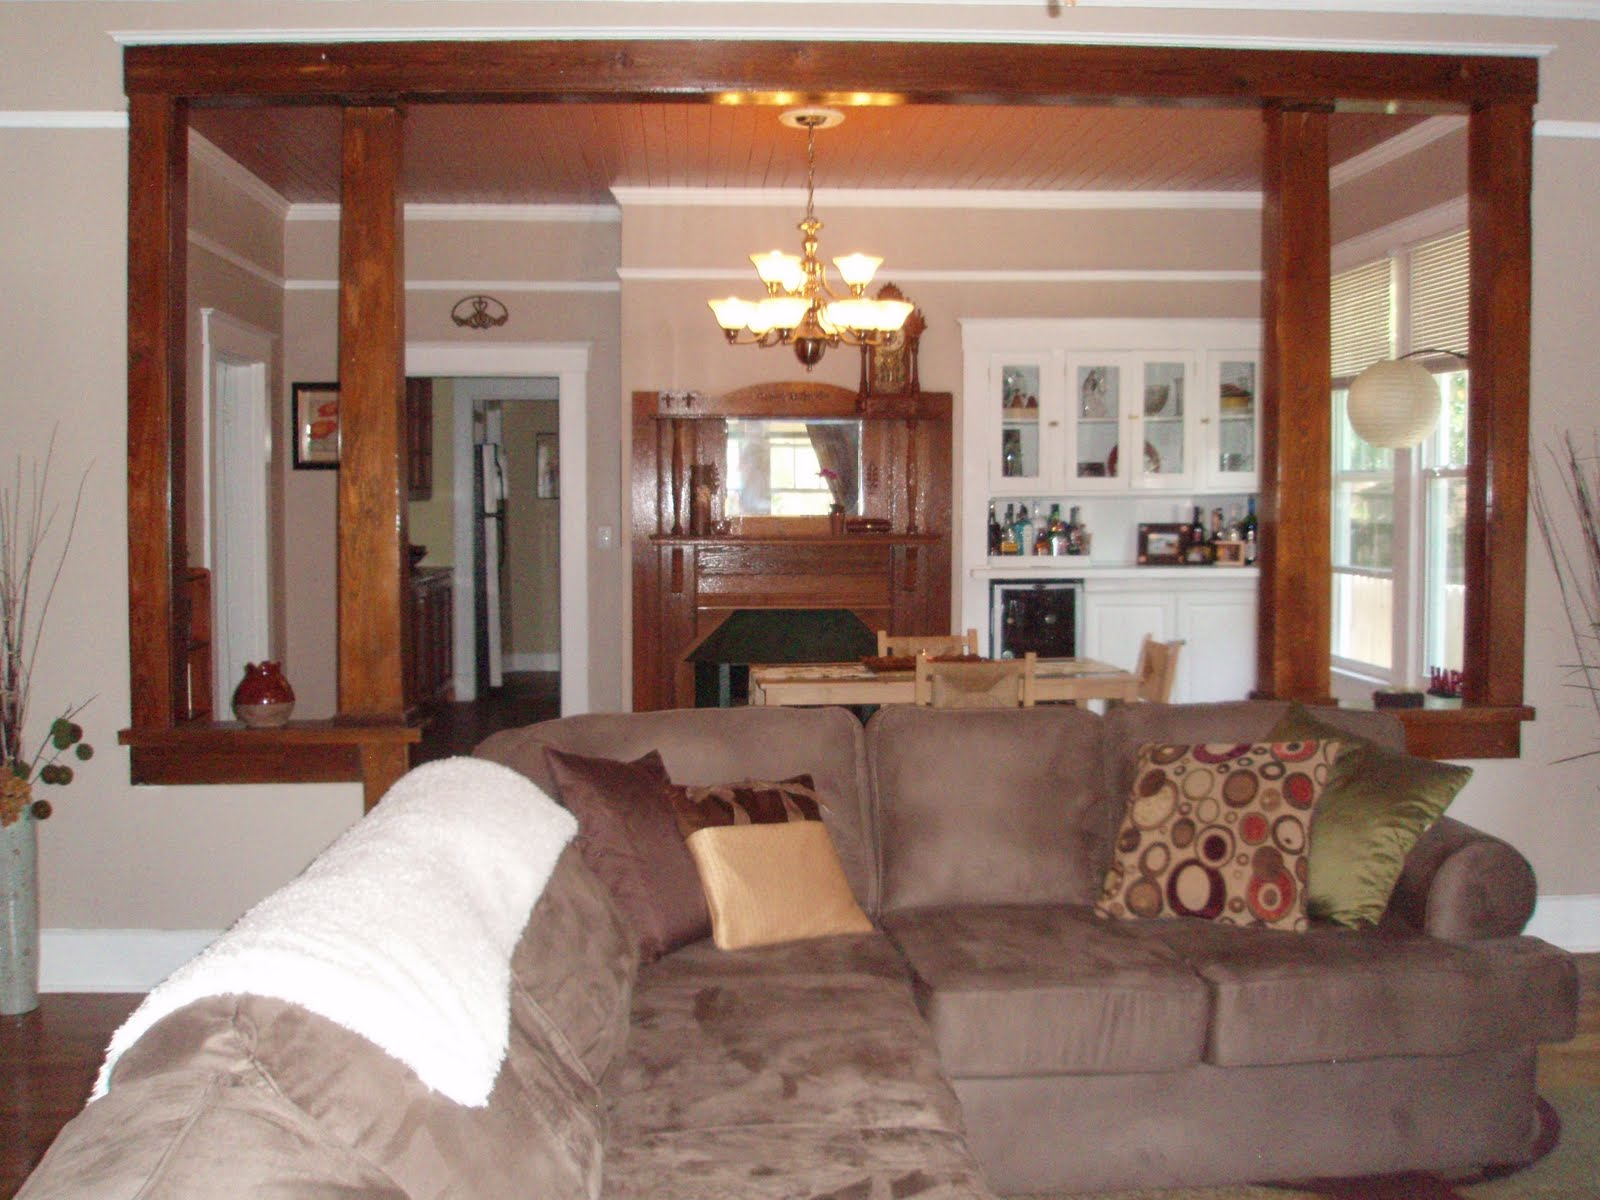 Spacious living room with large windows and original wood pillar  title=